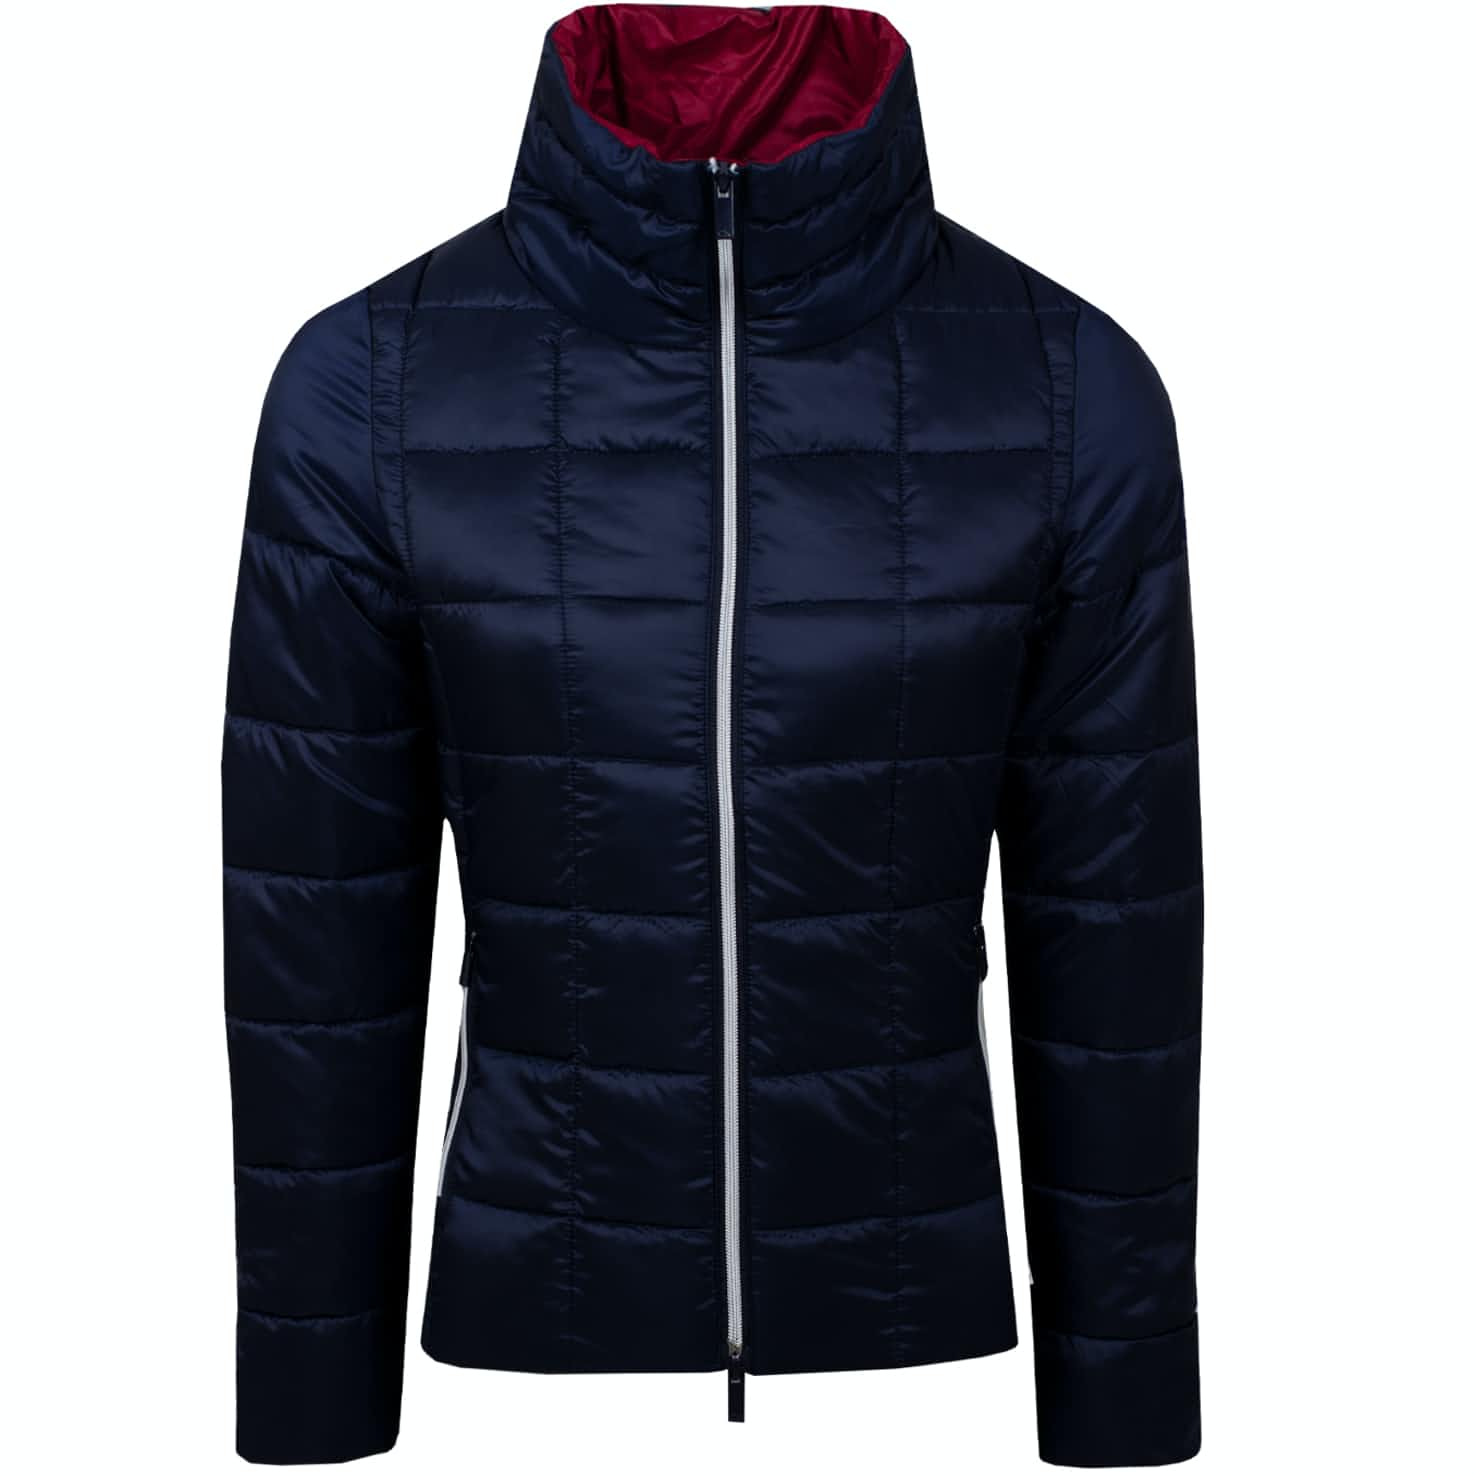 Womens Mira Jacket Navy - AW19